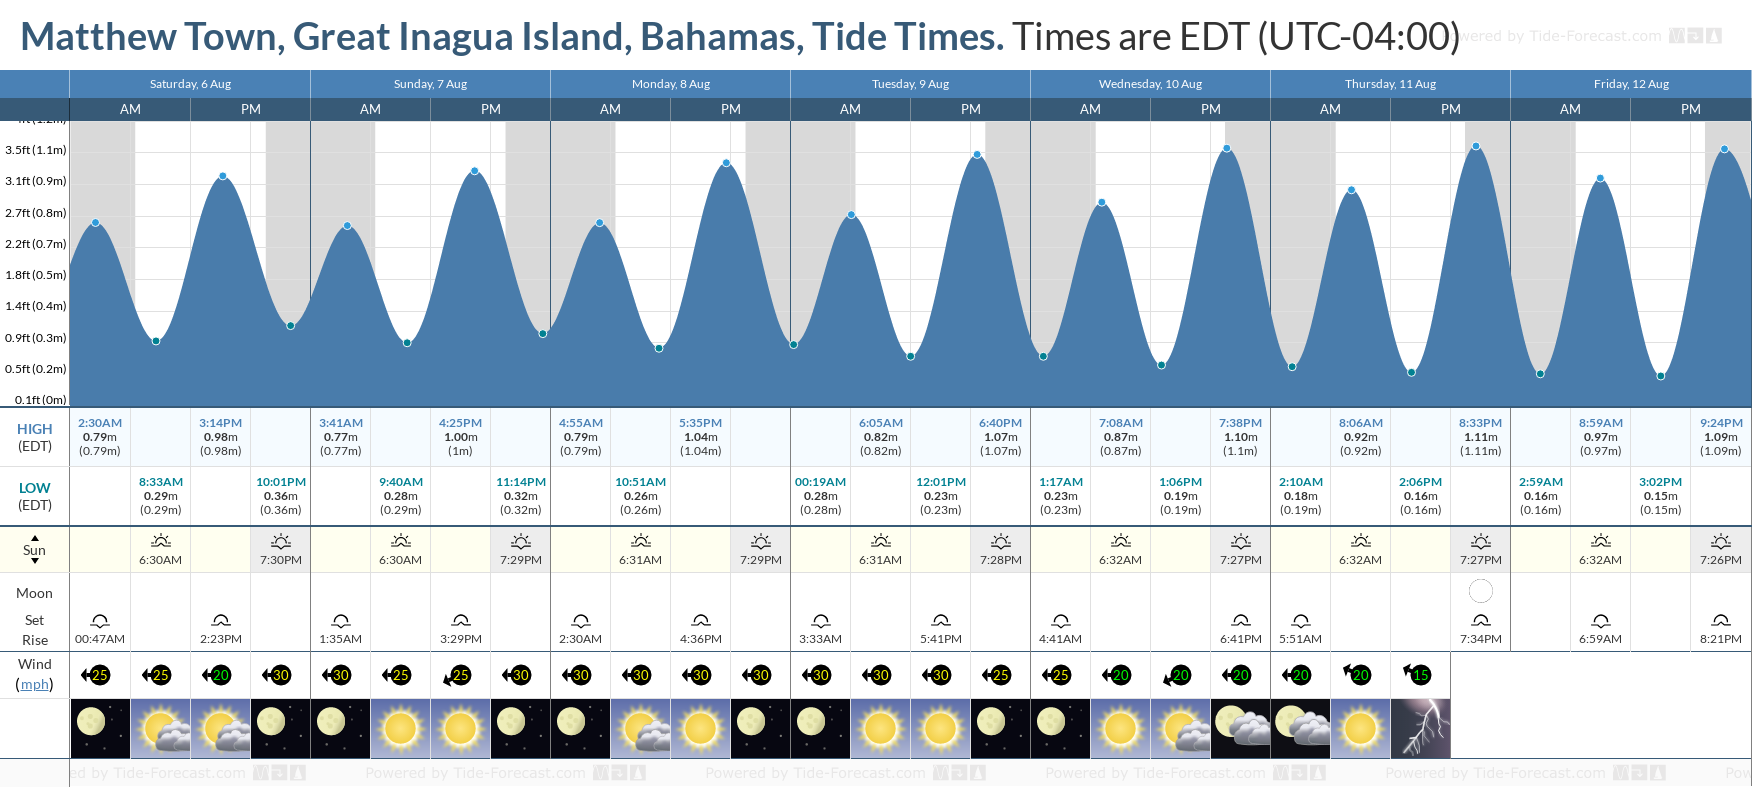 Matthew Town, Great Inagua Island, Bahamas Tide Chart including high and low tide tide times for the next 7 days